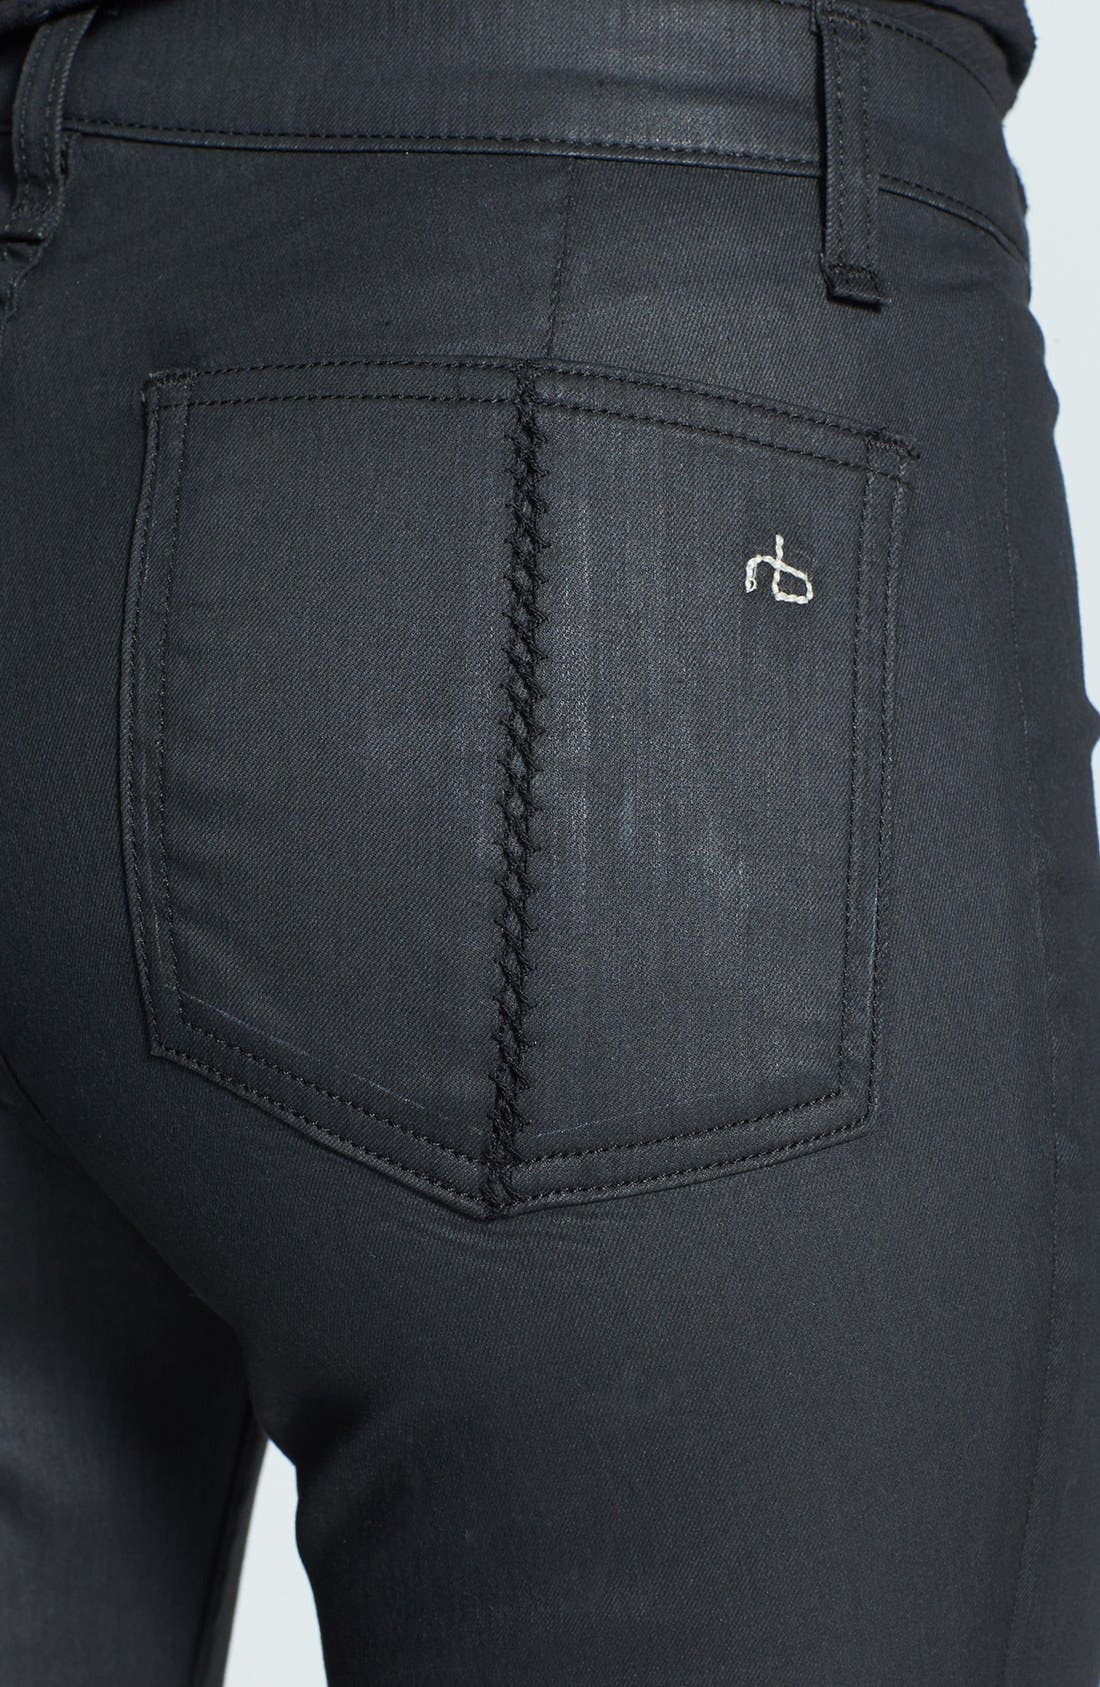 Alternate Image 3  - rag & bone/JEAN 'Separating' Coated Open Detail Skinny Jeans (Shore Ditch)